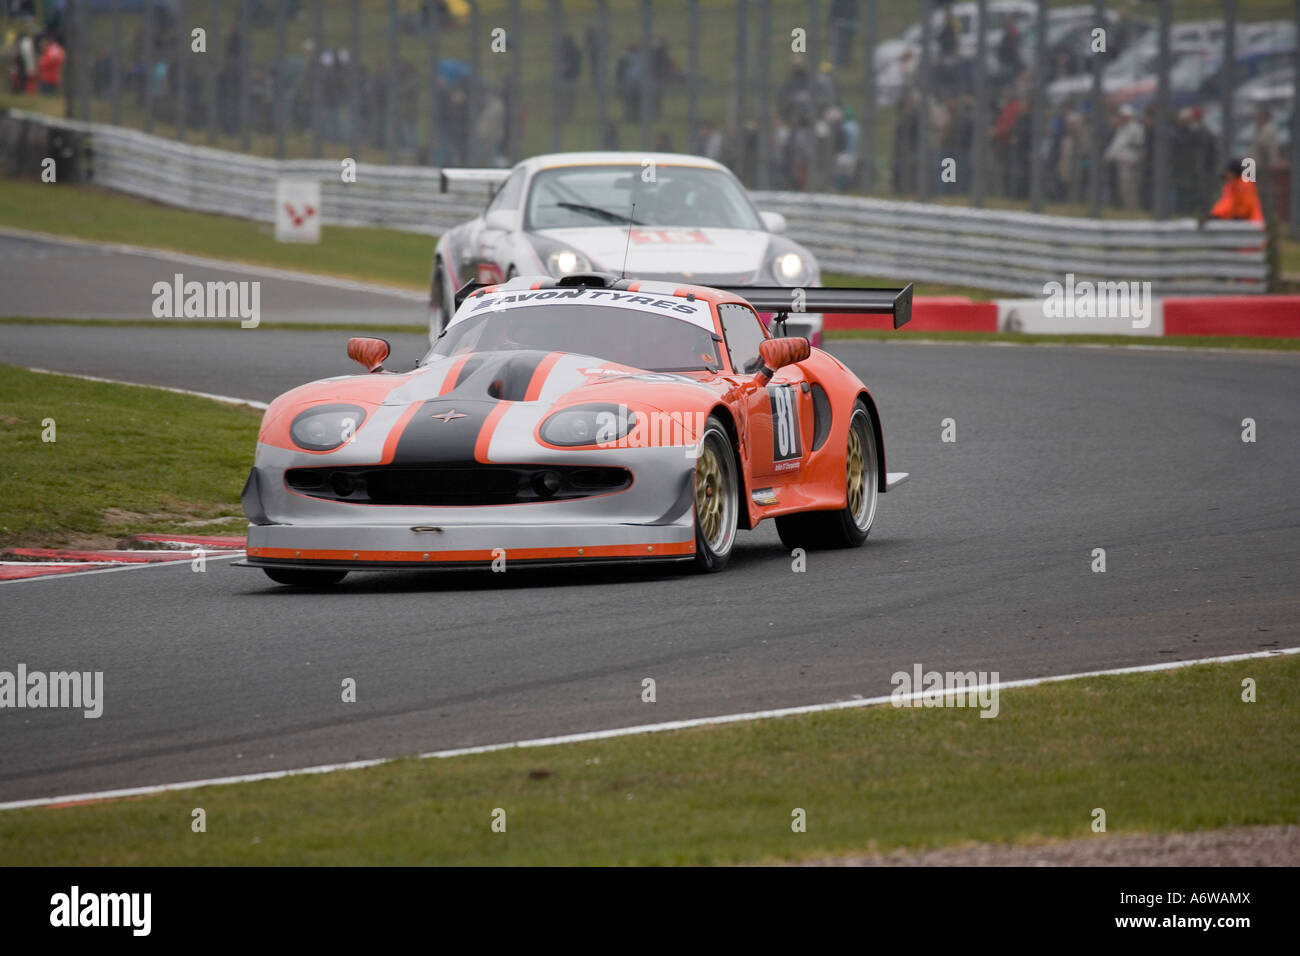 Marcos Mantis leading a Porsche 997 GT3 at Oulton Park GT Racing ...